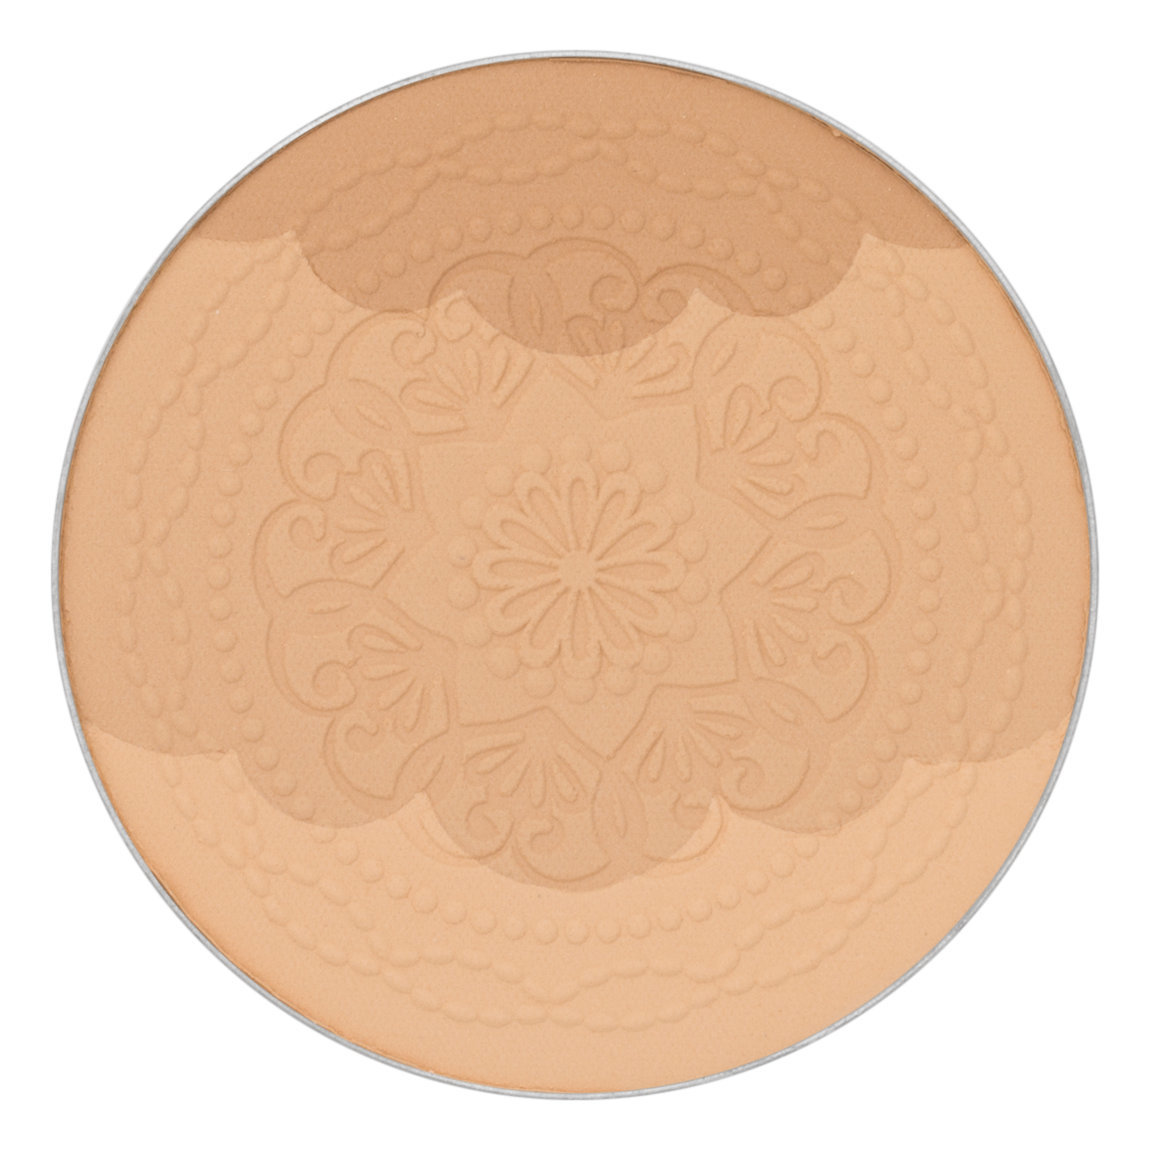 Anna Sui BB Pressed Powder (Refill) 03 product swatch.